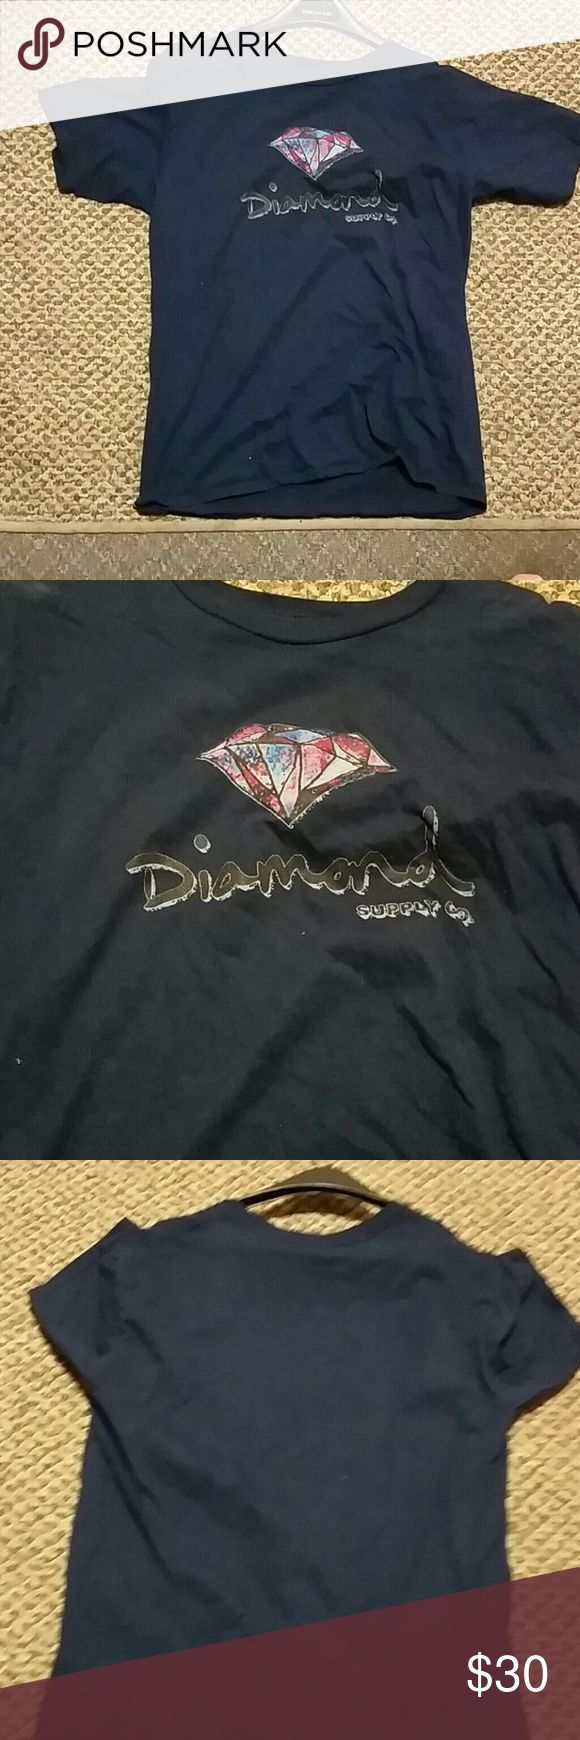 Diamond supply Company tee Navy blue new condition diamond tee Diamond Supply Co. Shirts Tees - Short Sleeve